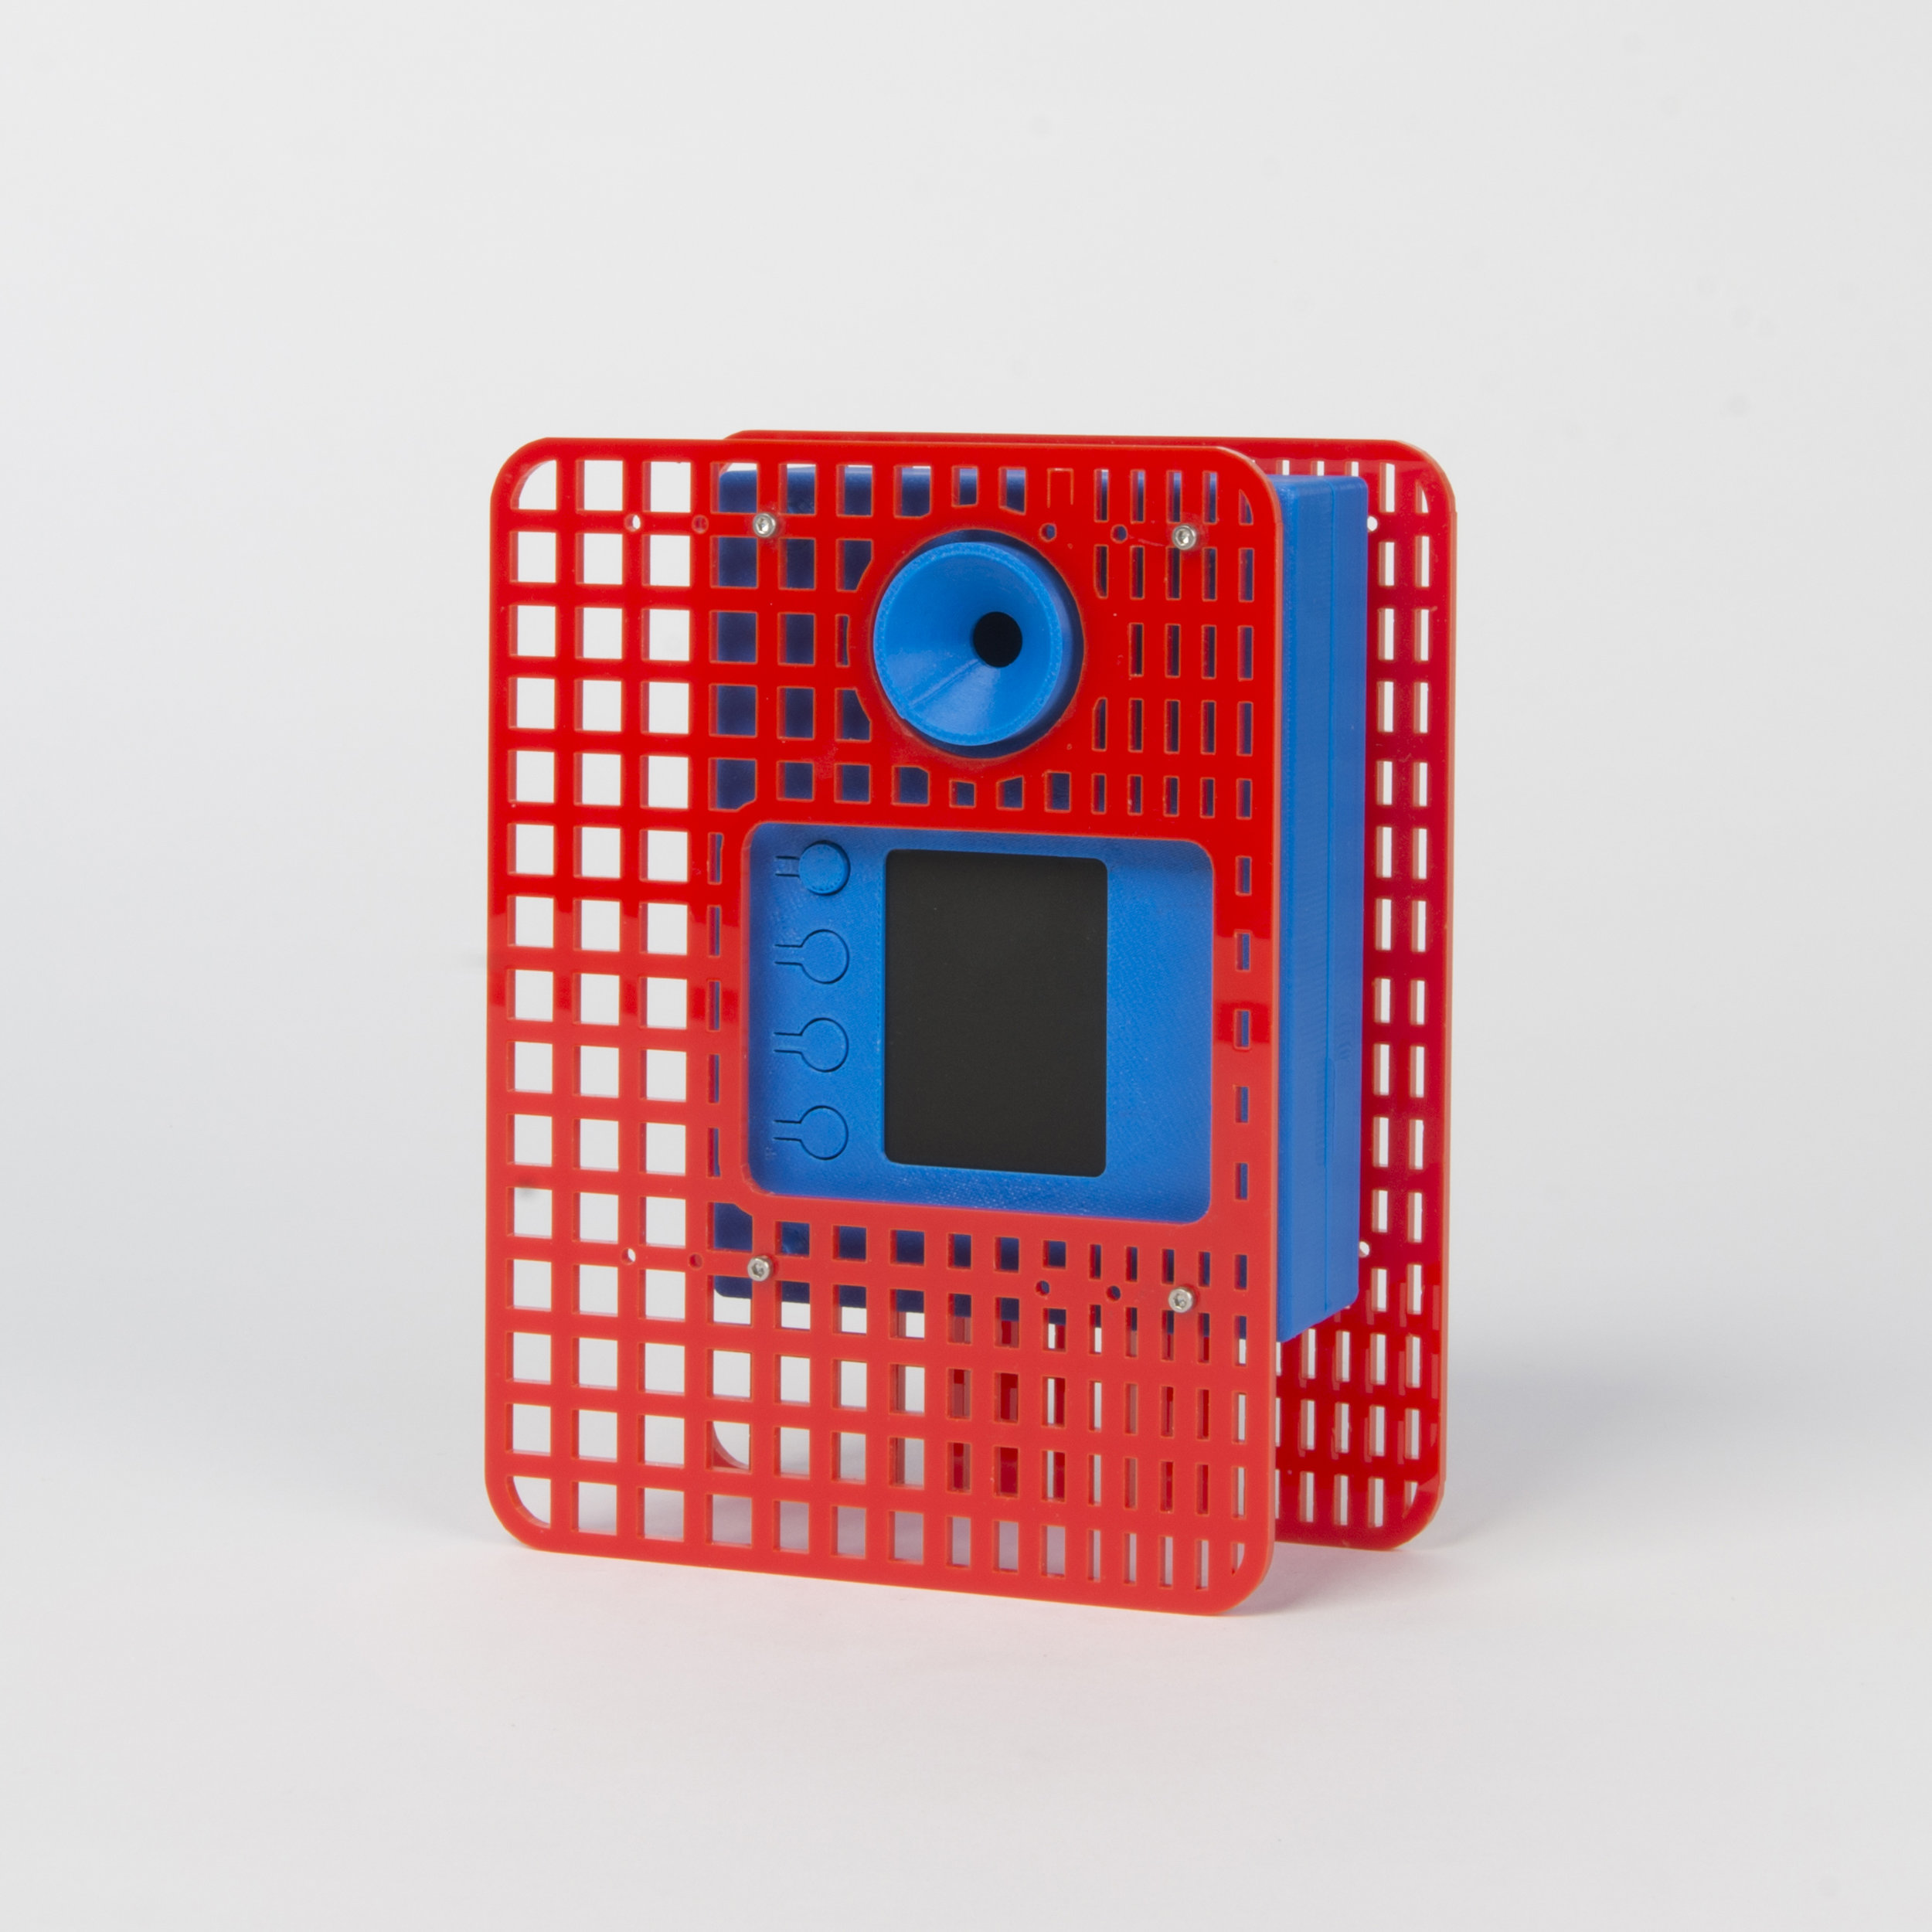 Selfie Camera with Lasercut Attachments    Following on from the Lasercut Attachment Camera, this camera sees that adoption of the selfie format favoured in final designs of VisionCam..  more